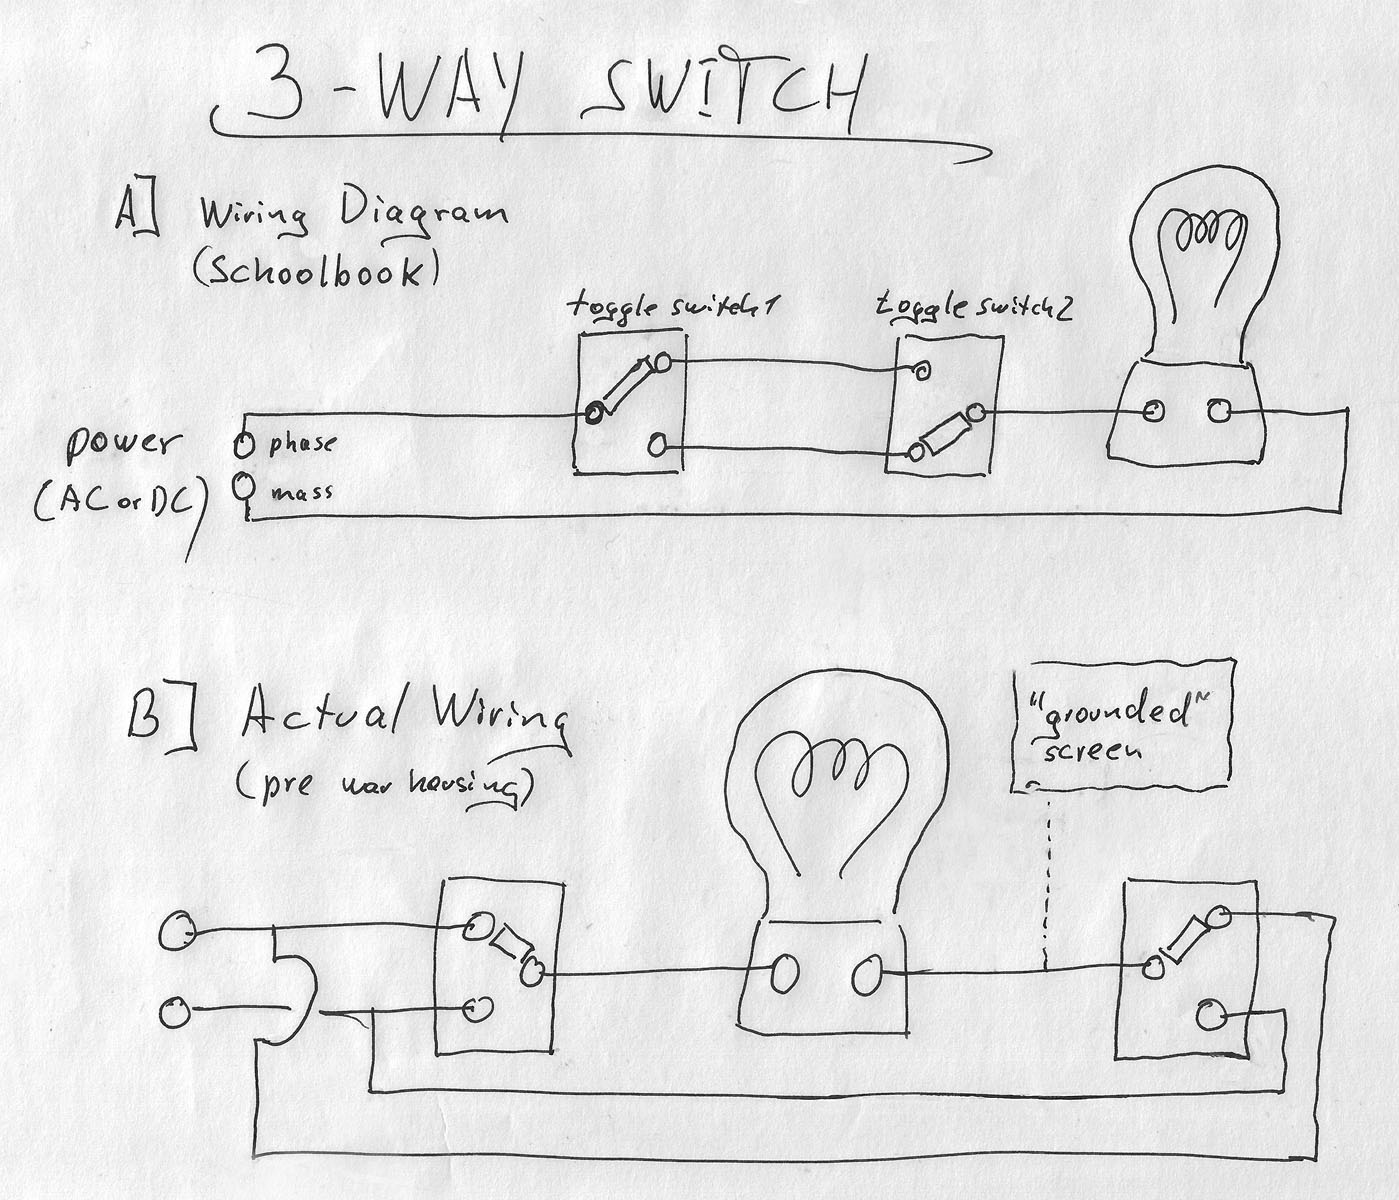 wiring diagram diagrams 718358 switchboard wiring diagram electrical wiring simple switchboard wiring diagram at crackthecode.co